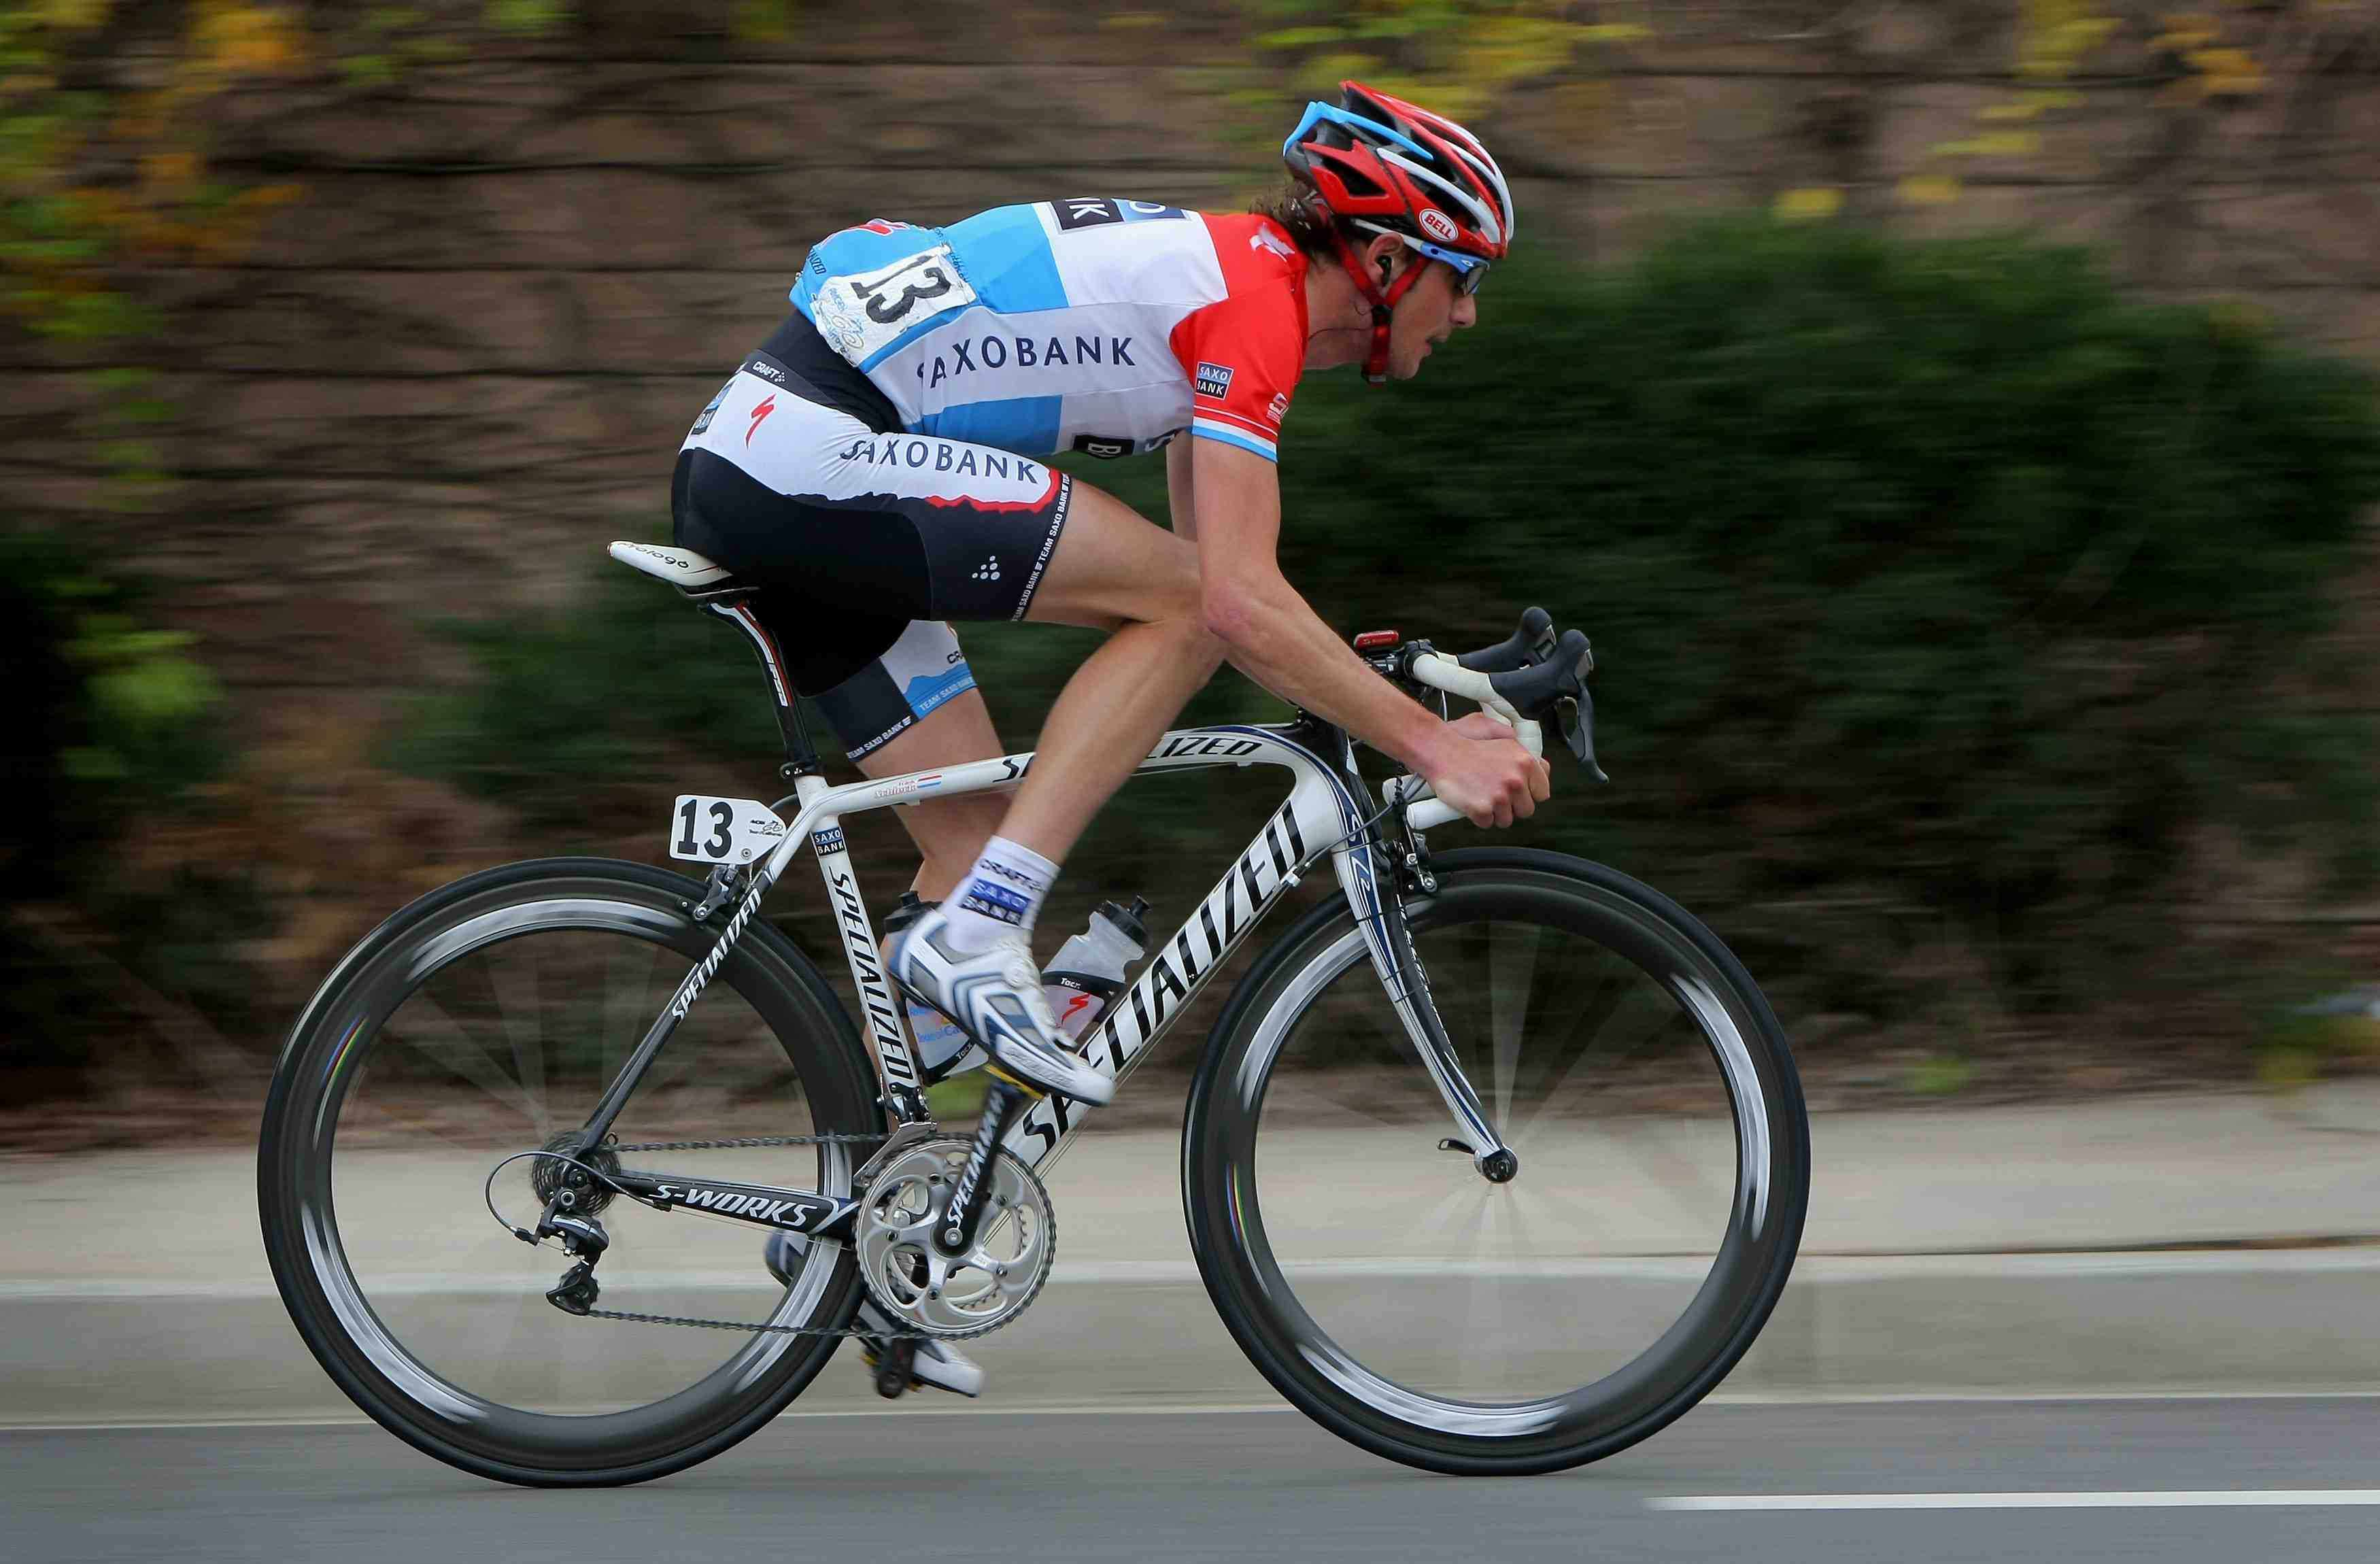 Luxembourg's Frank Schleck (Saxo Bank) makes his way through the streets of Escondido enroute to victory in Stage 8 of the AMGEN Tour of California on February 22, 2009.